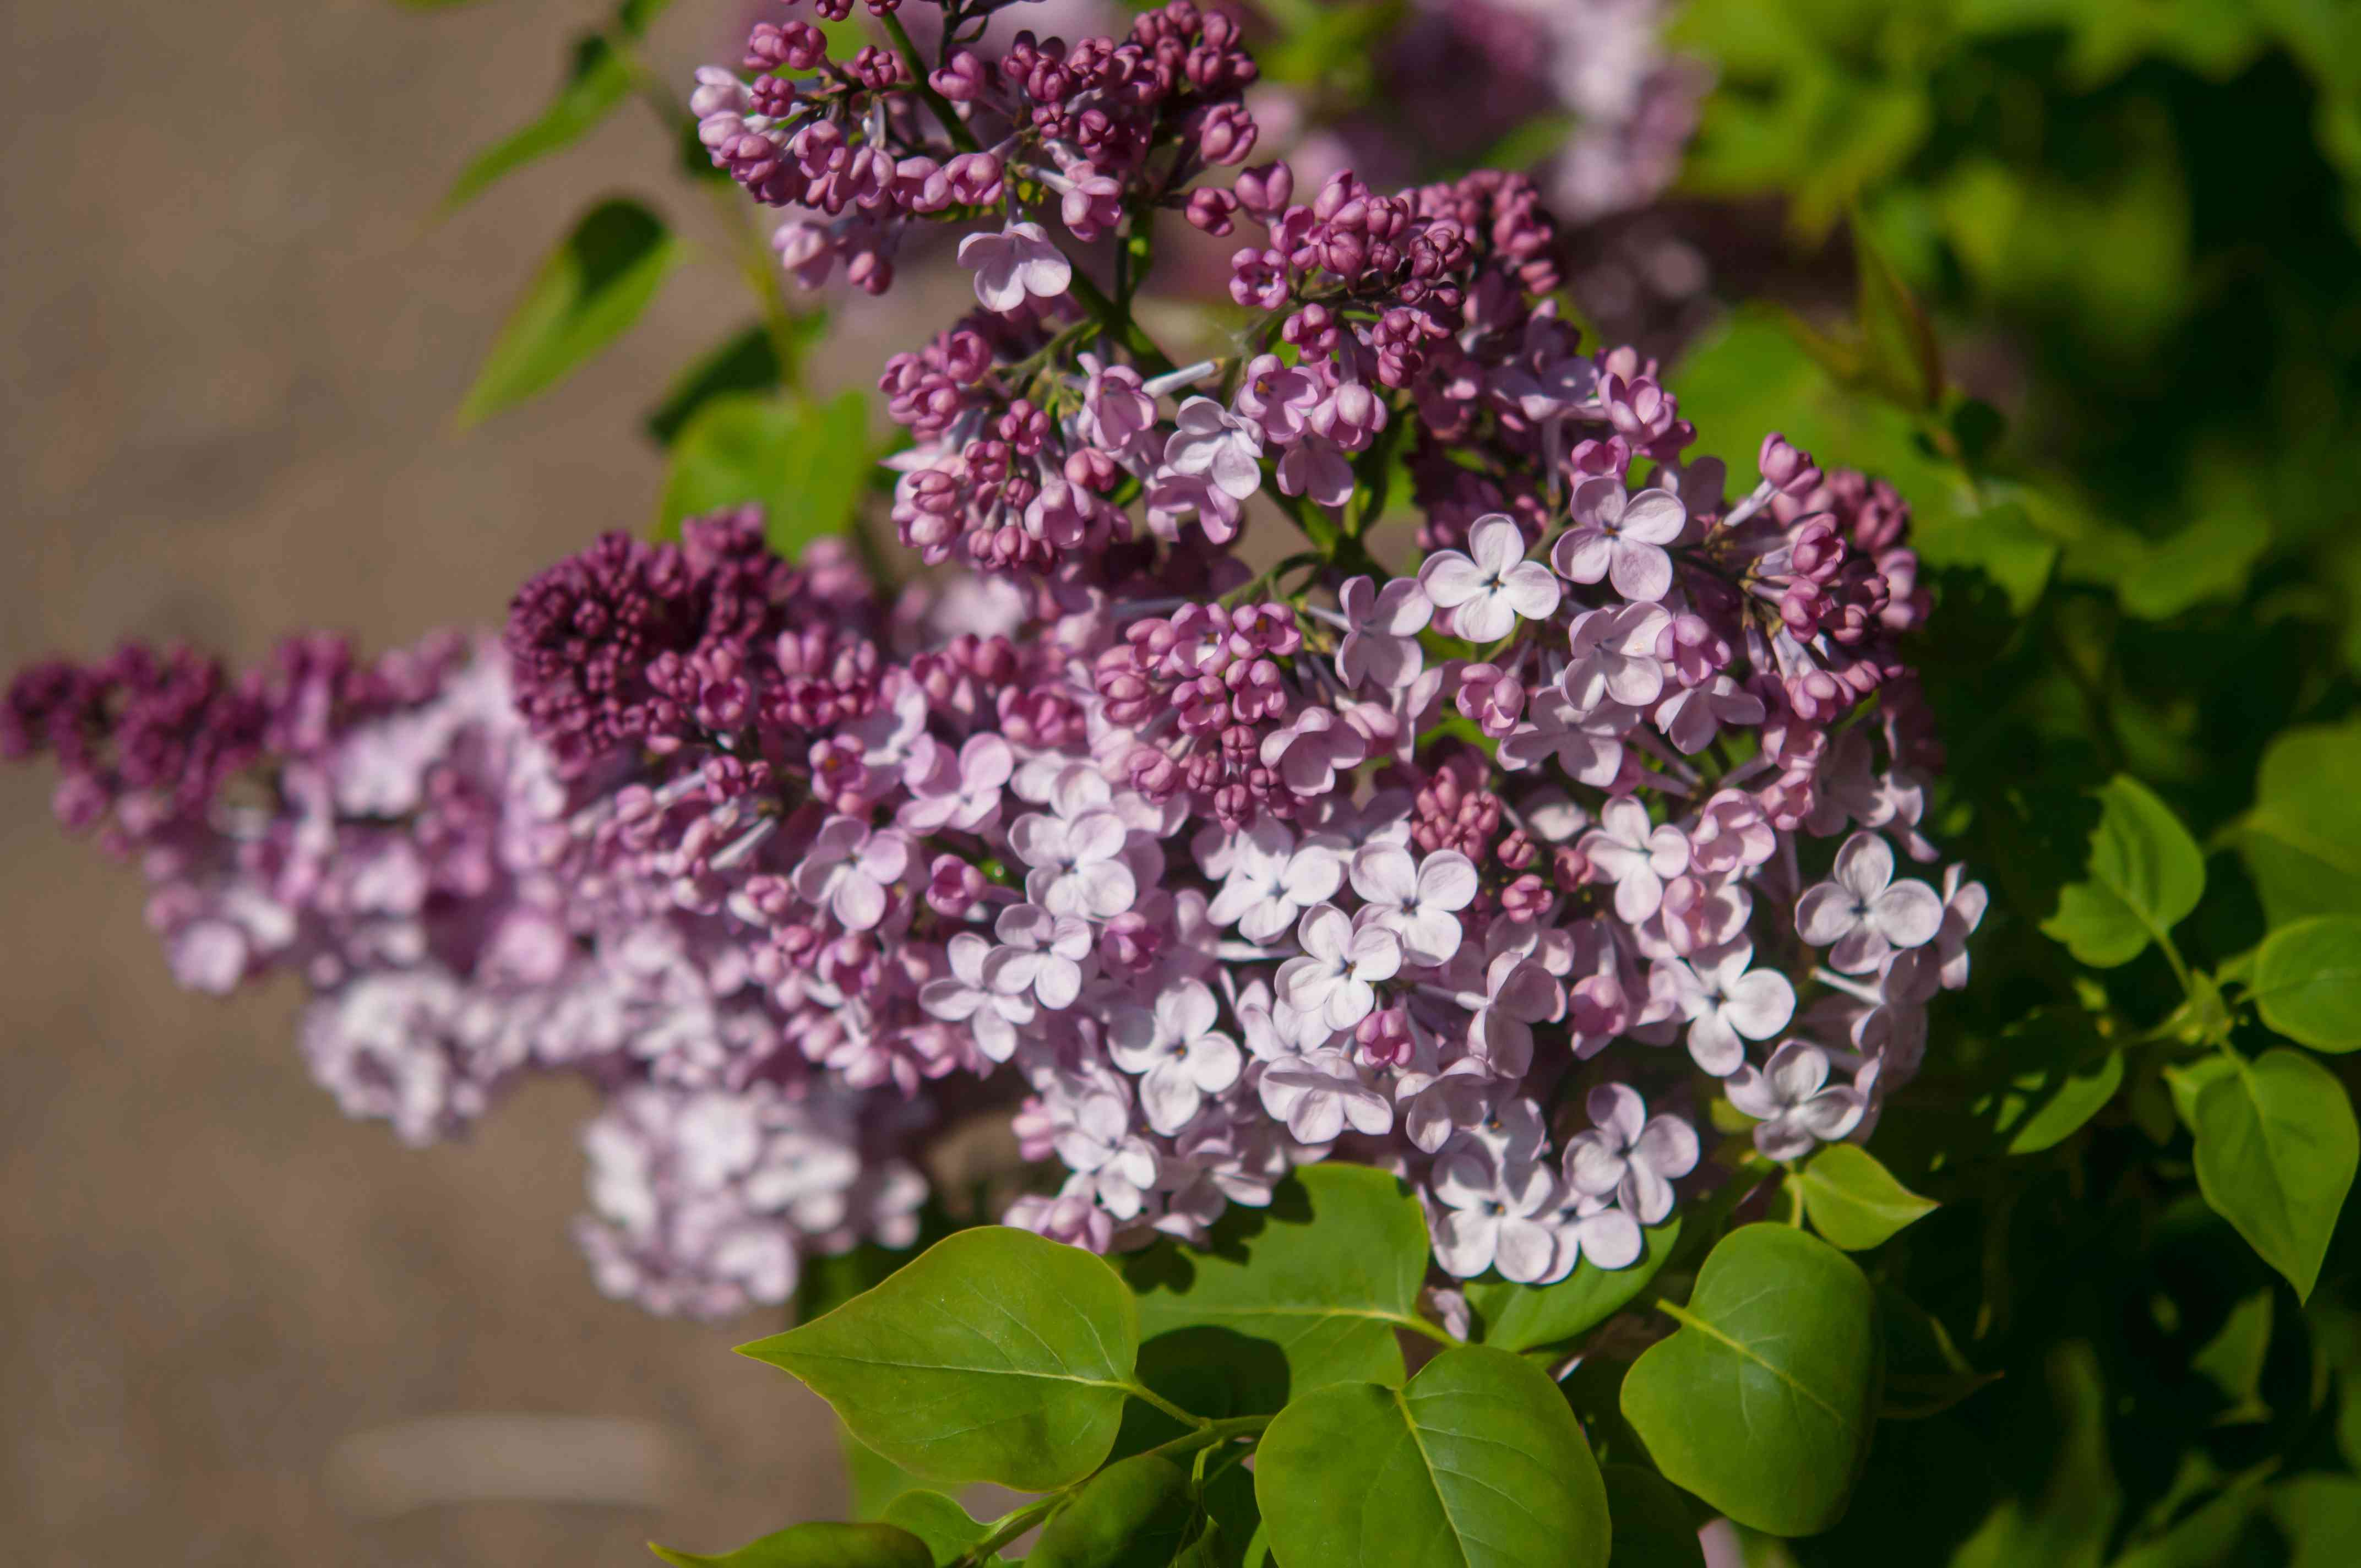 Maiden's blush lilac with reddish-purple flowers and buds closeup